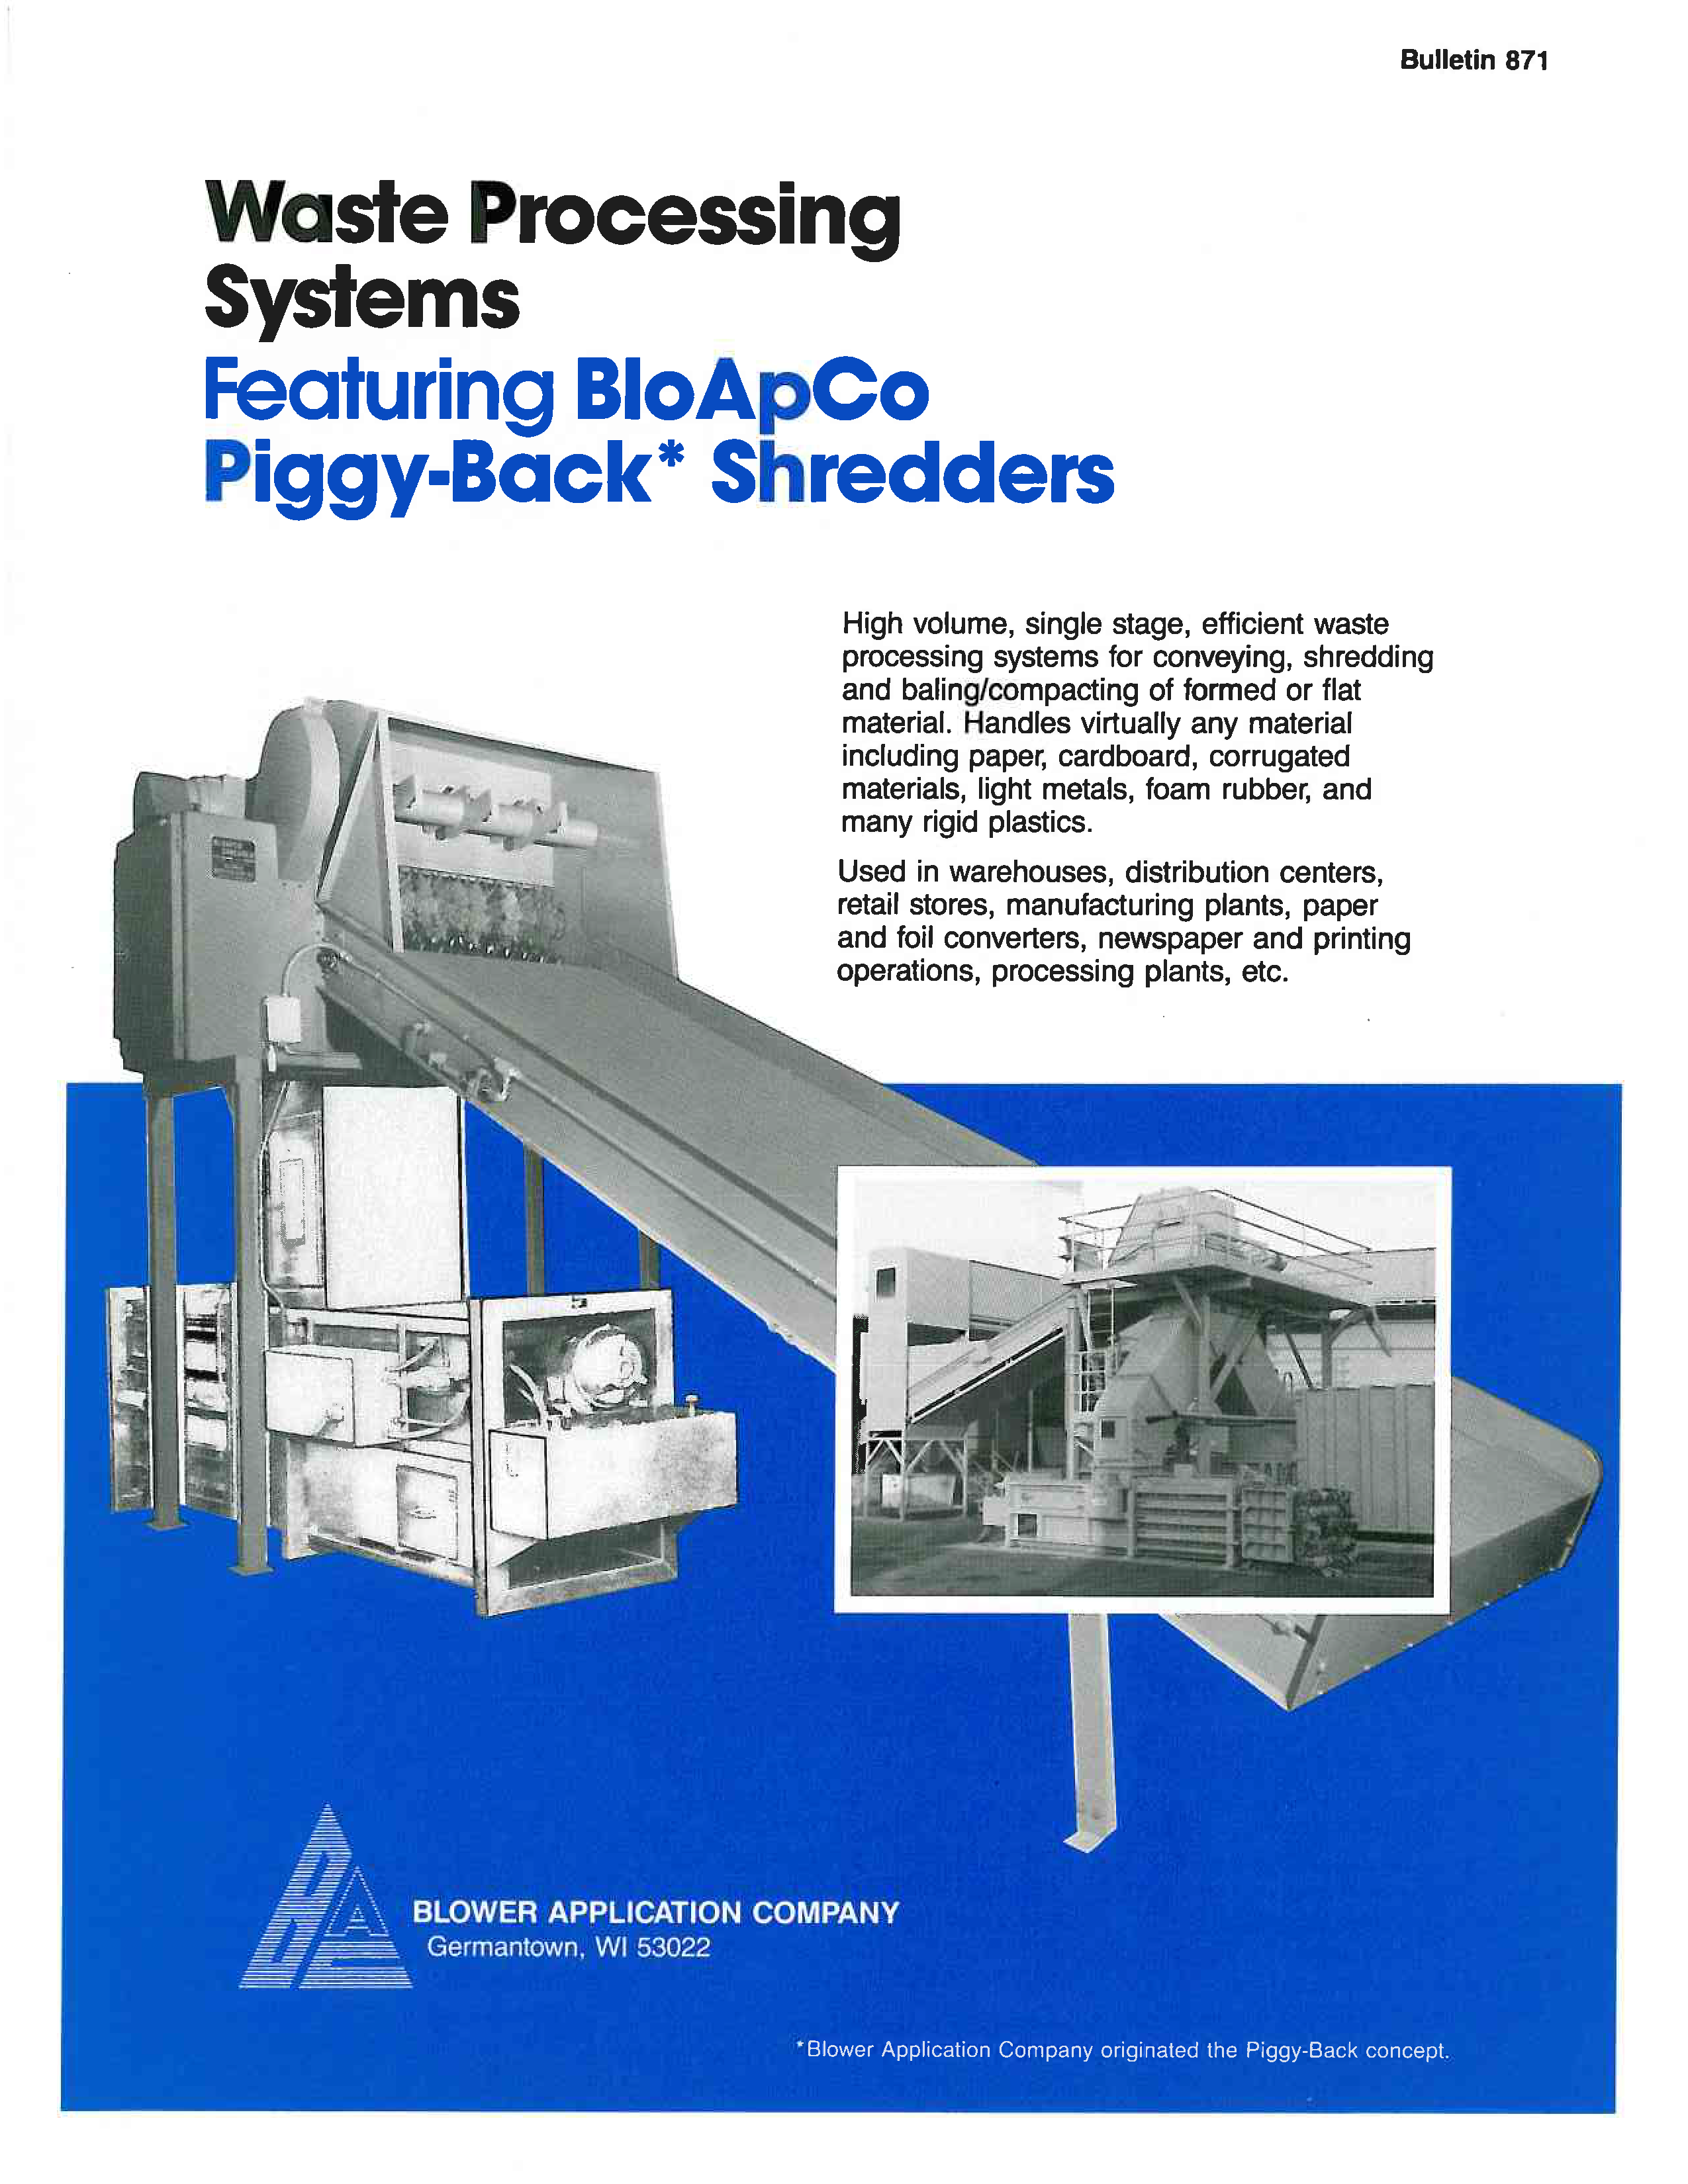 Learn more about the Piggyback Shredder in the BloApCo brochure.